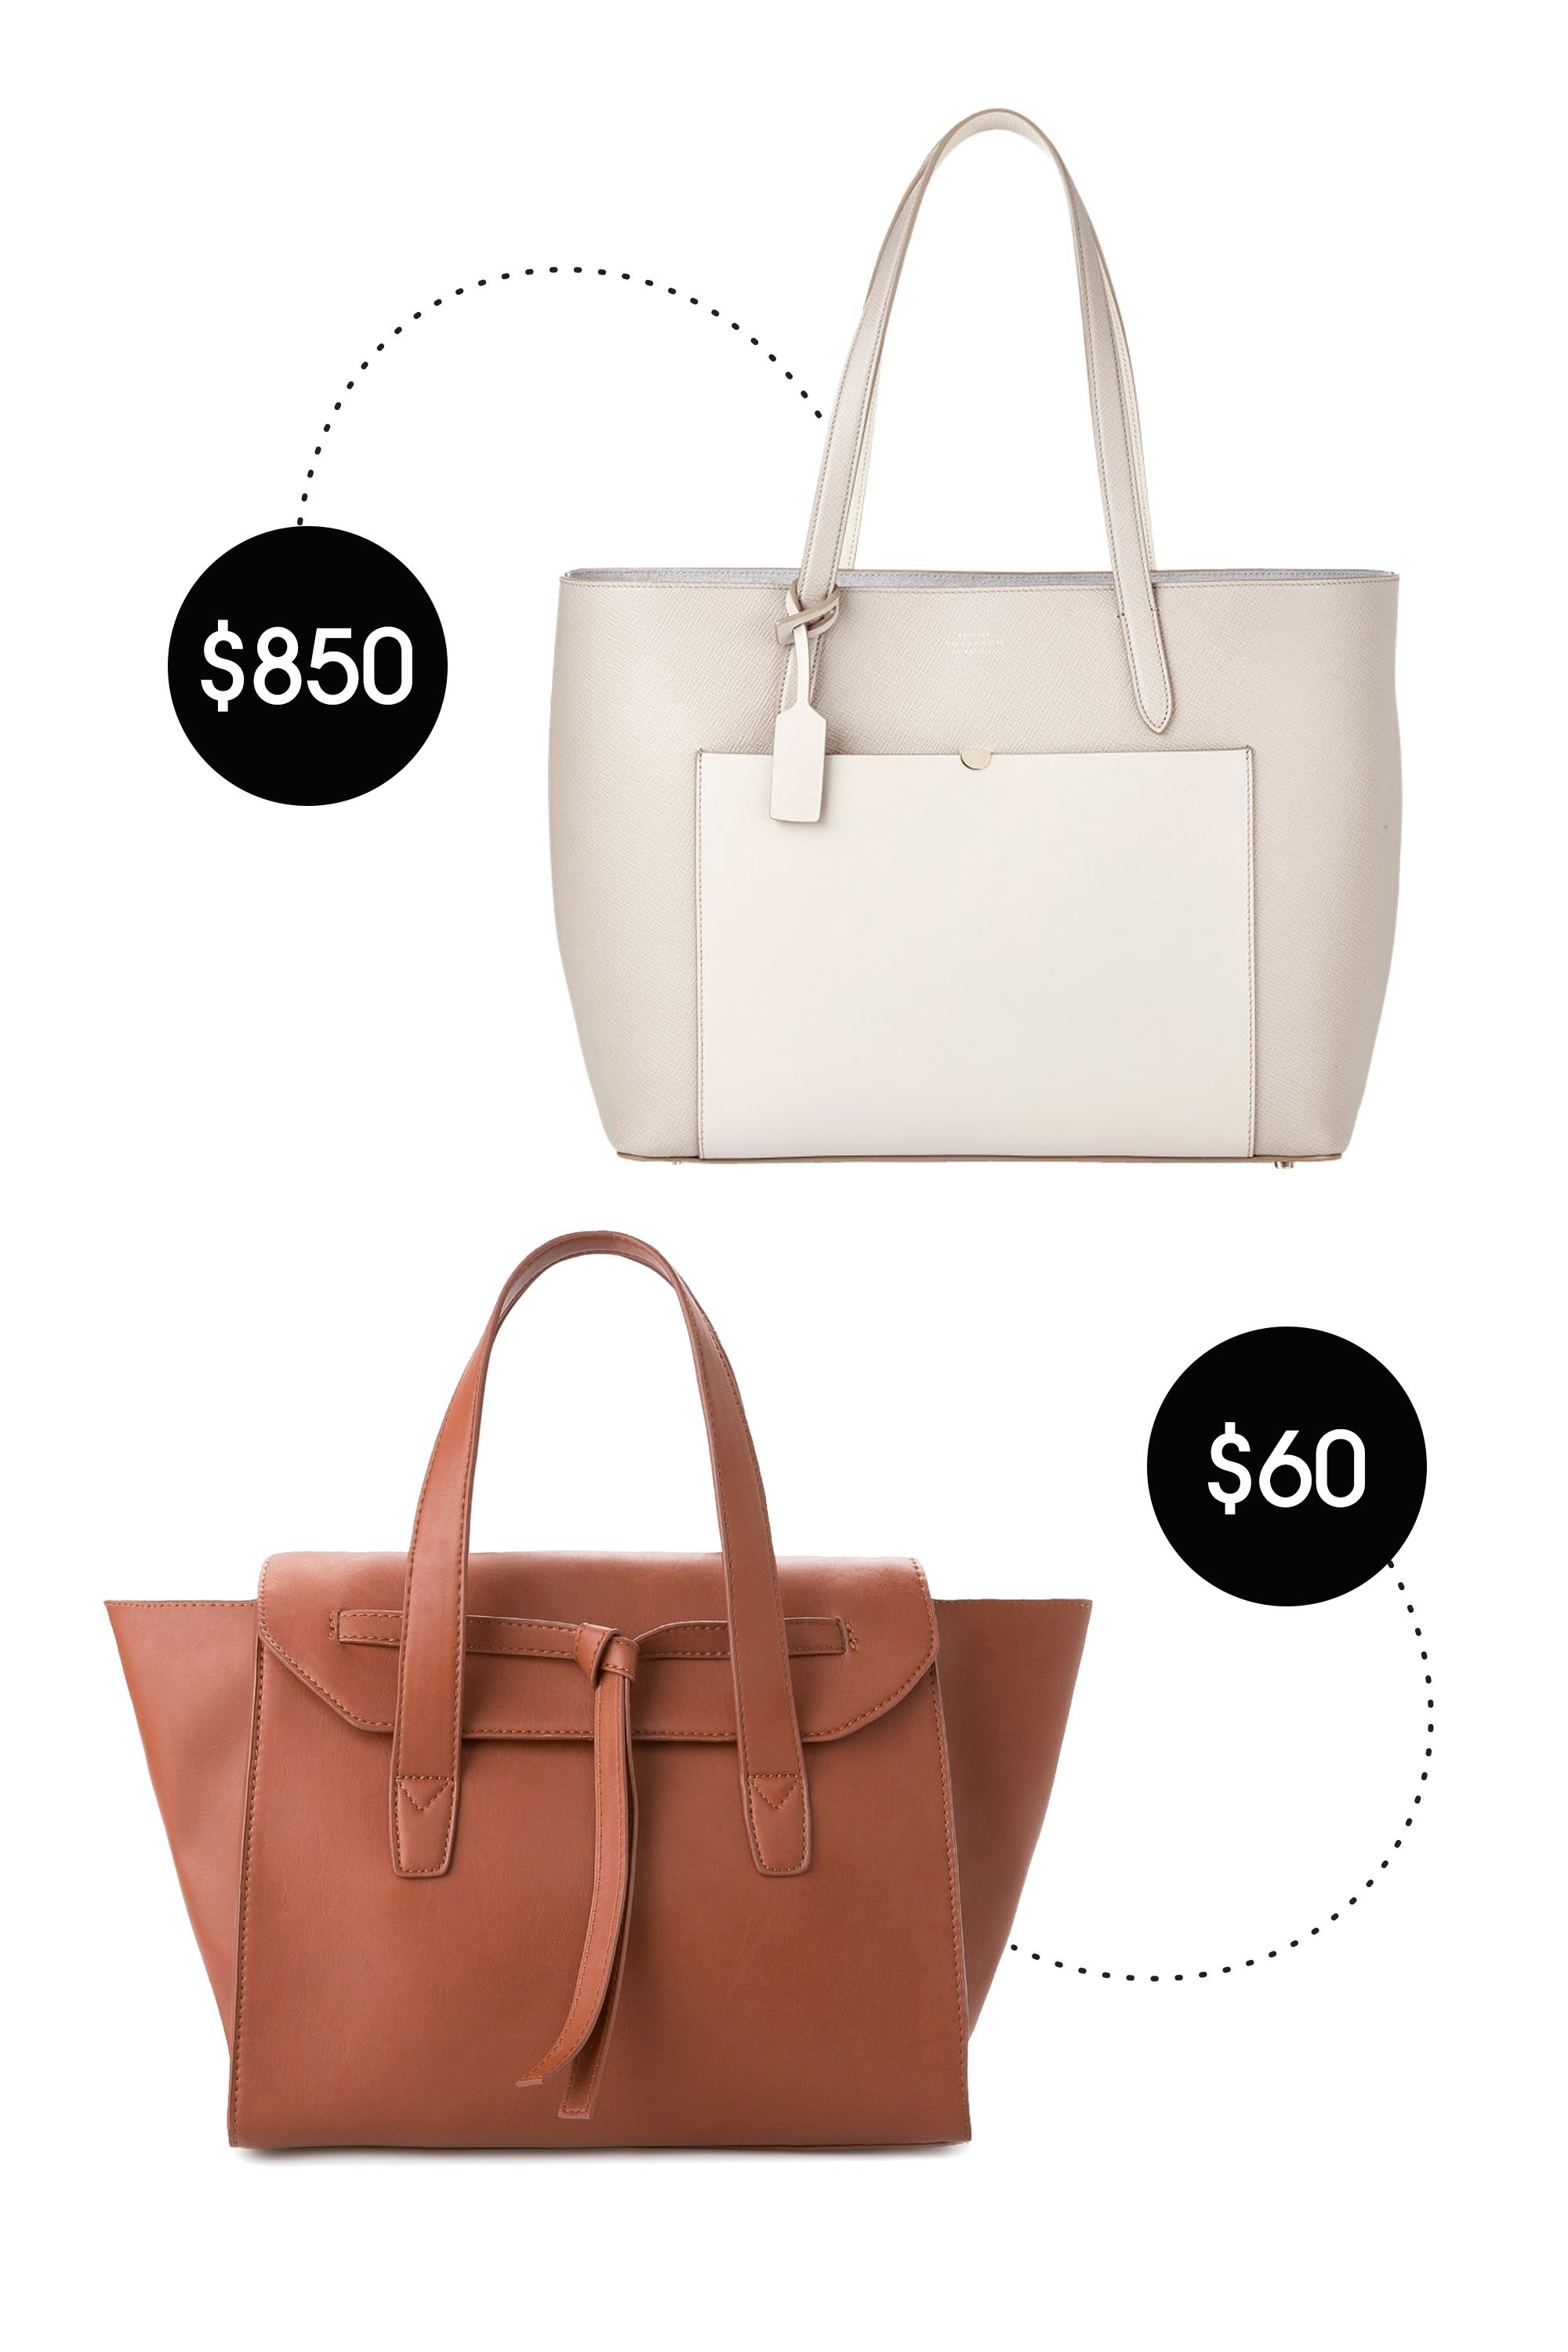 "&lt;p&gt;Smythson Panama Tote, $850; &lt;a href=""http://www.barneys.com/smythson-panama-tote-503859490.html#start=49&amp;amp;sz=48&amp;amp;srule=price-low-to-high""&gt;barneys.com&lt;/a&gt;&lt;/p&gt; &lt;p&gt;Mango Big Knot Bag, $60; &lt;a href=""http://shop.mango.com/US/p0/women/accessories/bags/big-knot-bag/?id=43080351_CU&amp;amp;n=1&amp;amp;s=accesorios.bolsos&amp;amp;ident=0__0_1431654680410&amp;amp;ts=1431654680410""&gt;mango.com&lt;/a&gt;&lt;/p&gt; &lt;p&gt; <!--EndFragment-->&lt;/p&gt;"